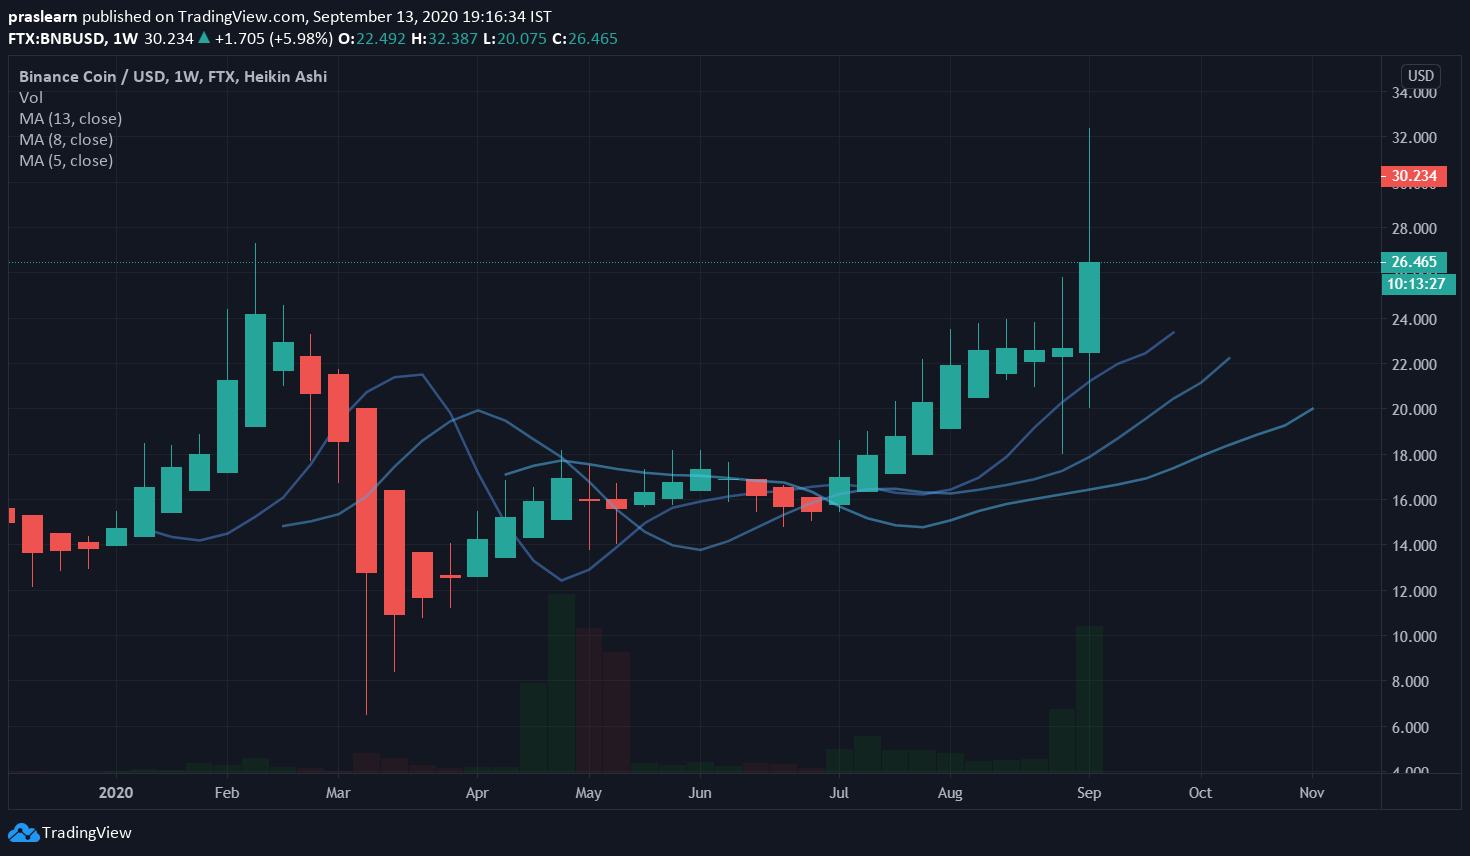 Top 5 Cryptocurrencies: BNB/USD Weekly Price: Tradingview